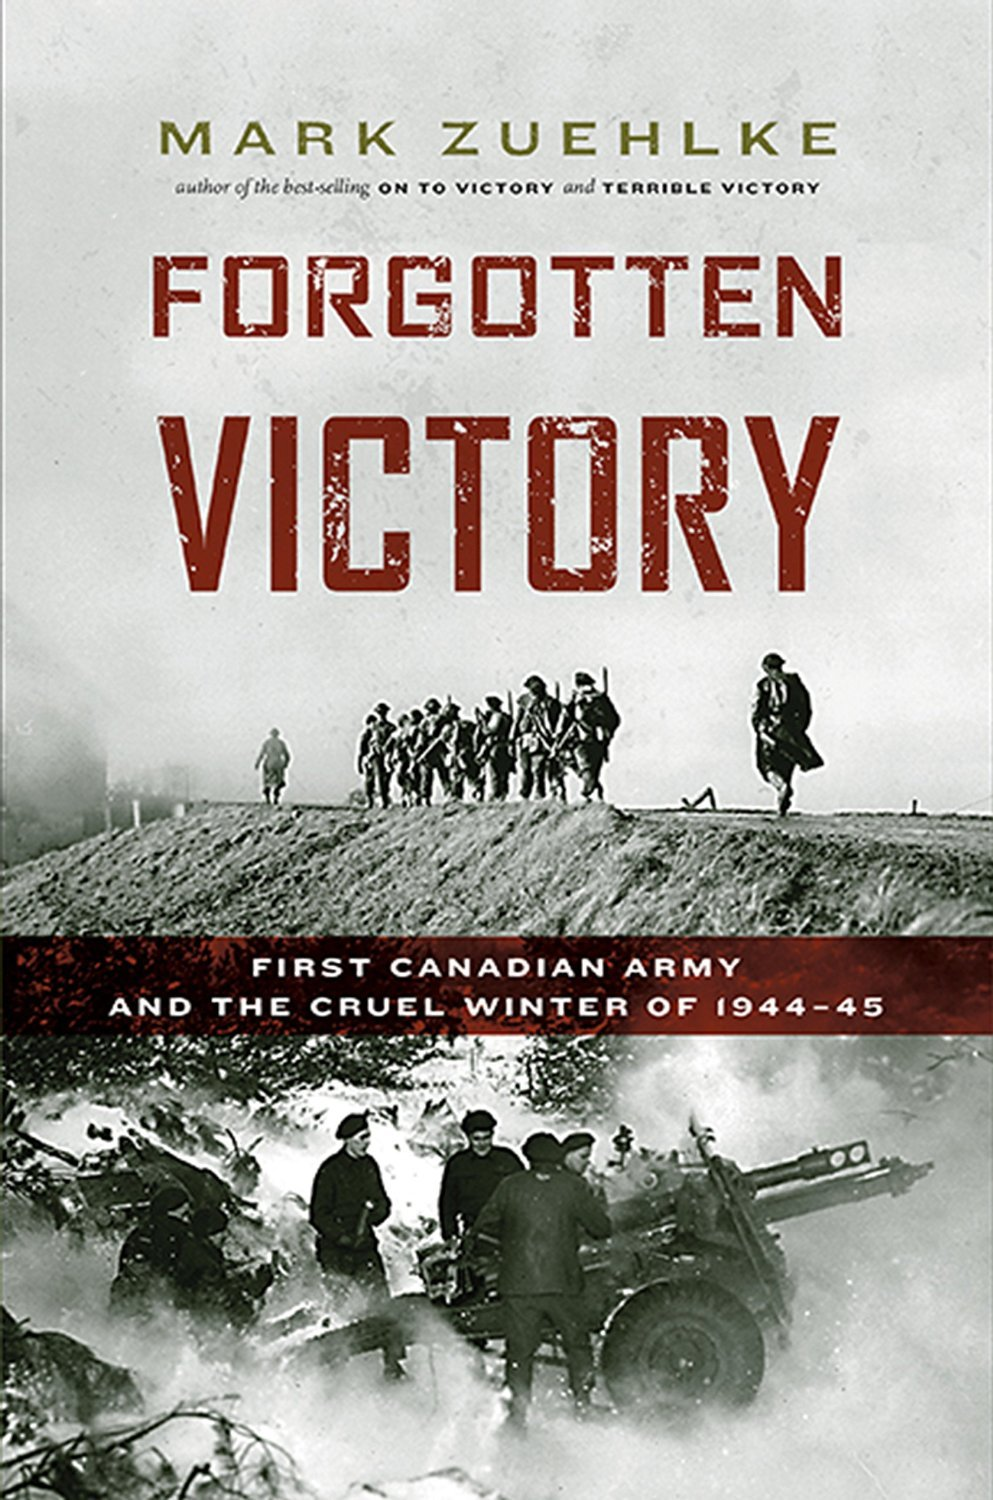 Excerpt from Forgotten Victory